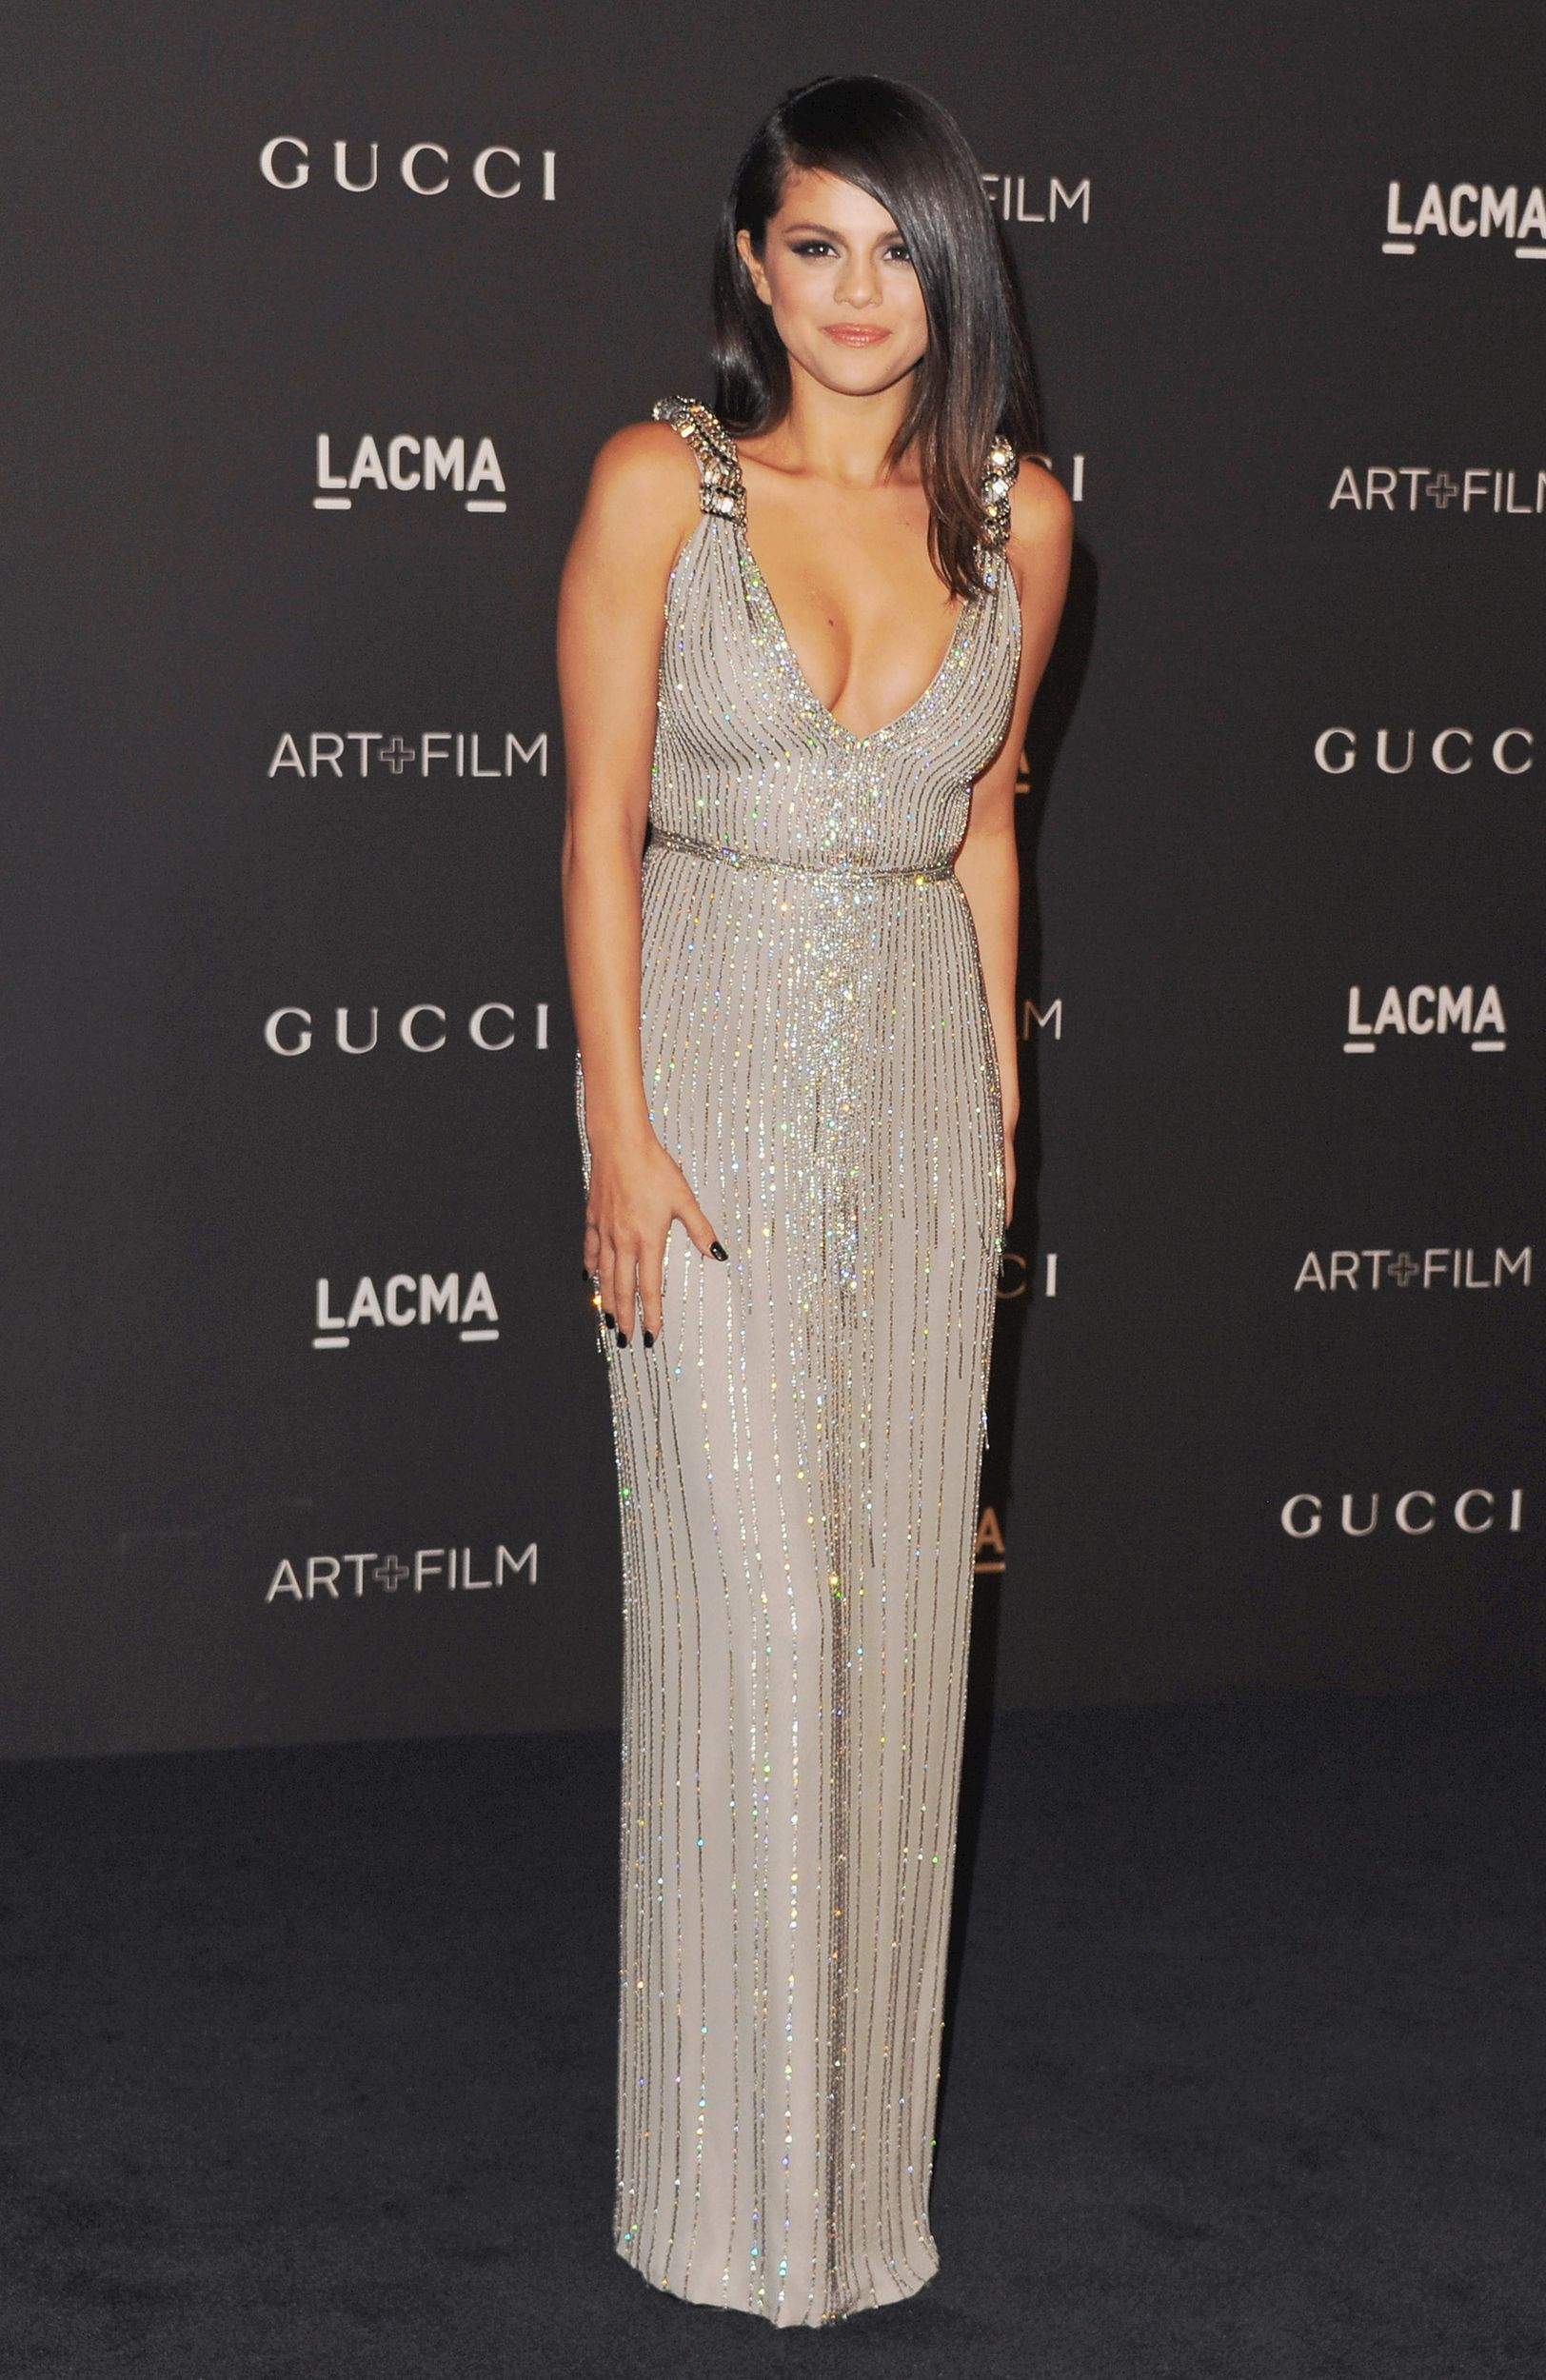 f1e6b692851 Gray Dress · Red Carpet Fashion · Selena Gomez wears Gucci to the 2014  LACMA Art Film Gala. via  stylelist